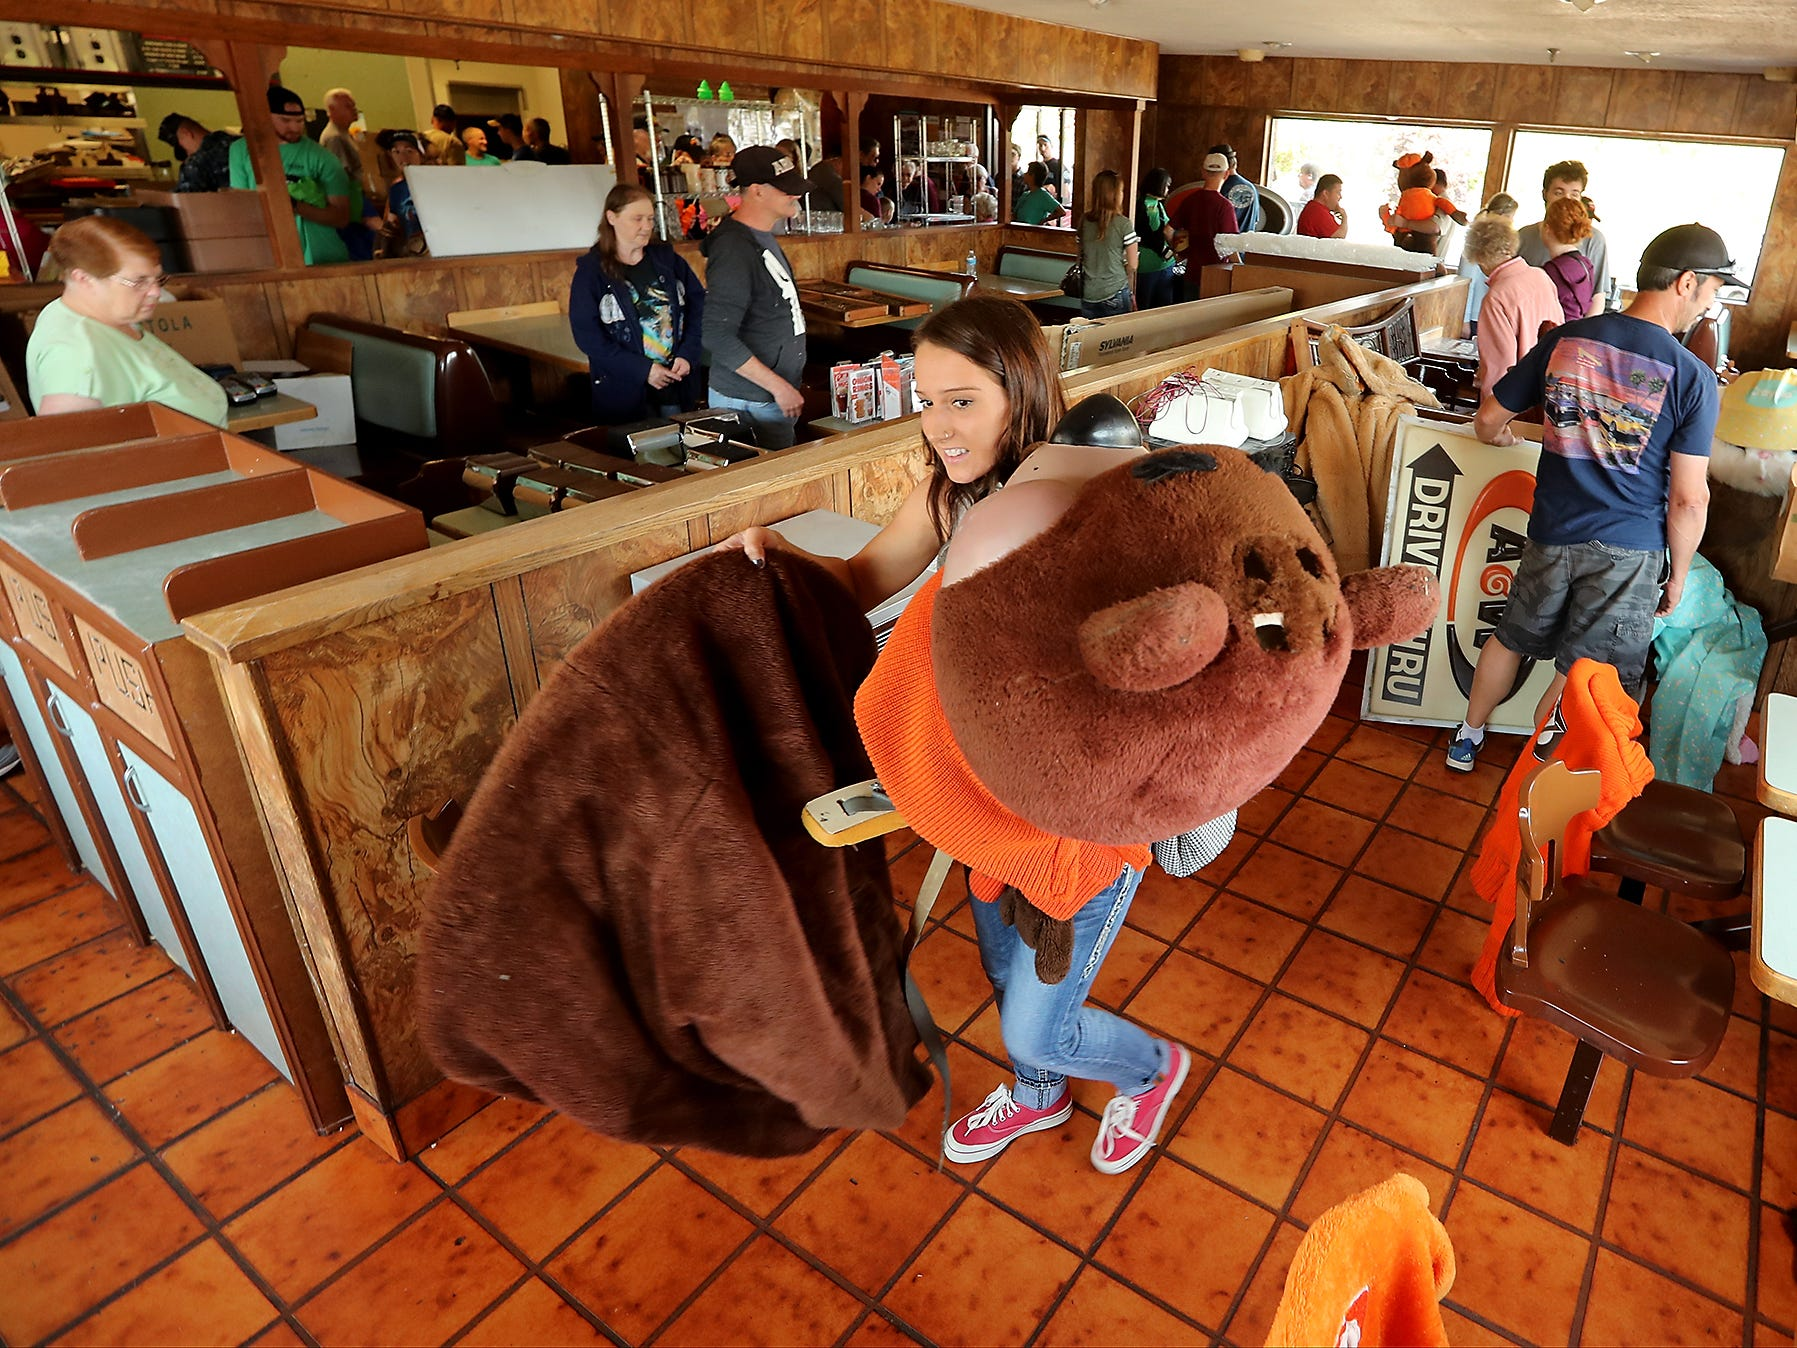 Melanie Zaccagnini, of Olalla, carries a Great Root Bear (also called Rooty who is the mascot for A&W Root Beer) costume do the checkout area during a sports memorabilia giveaway and restaurant equipment sale at the A&W in Port Orchard on Wednesday, August 29, 2018.